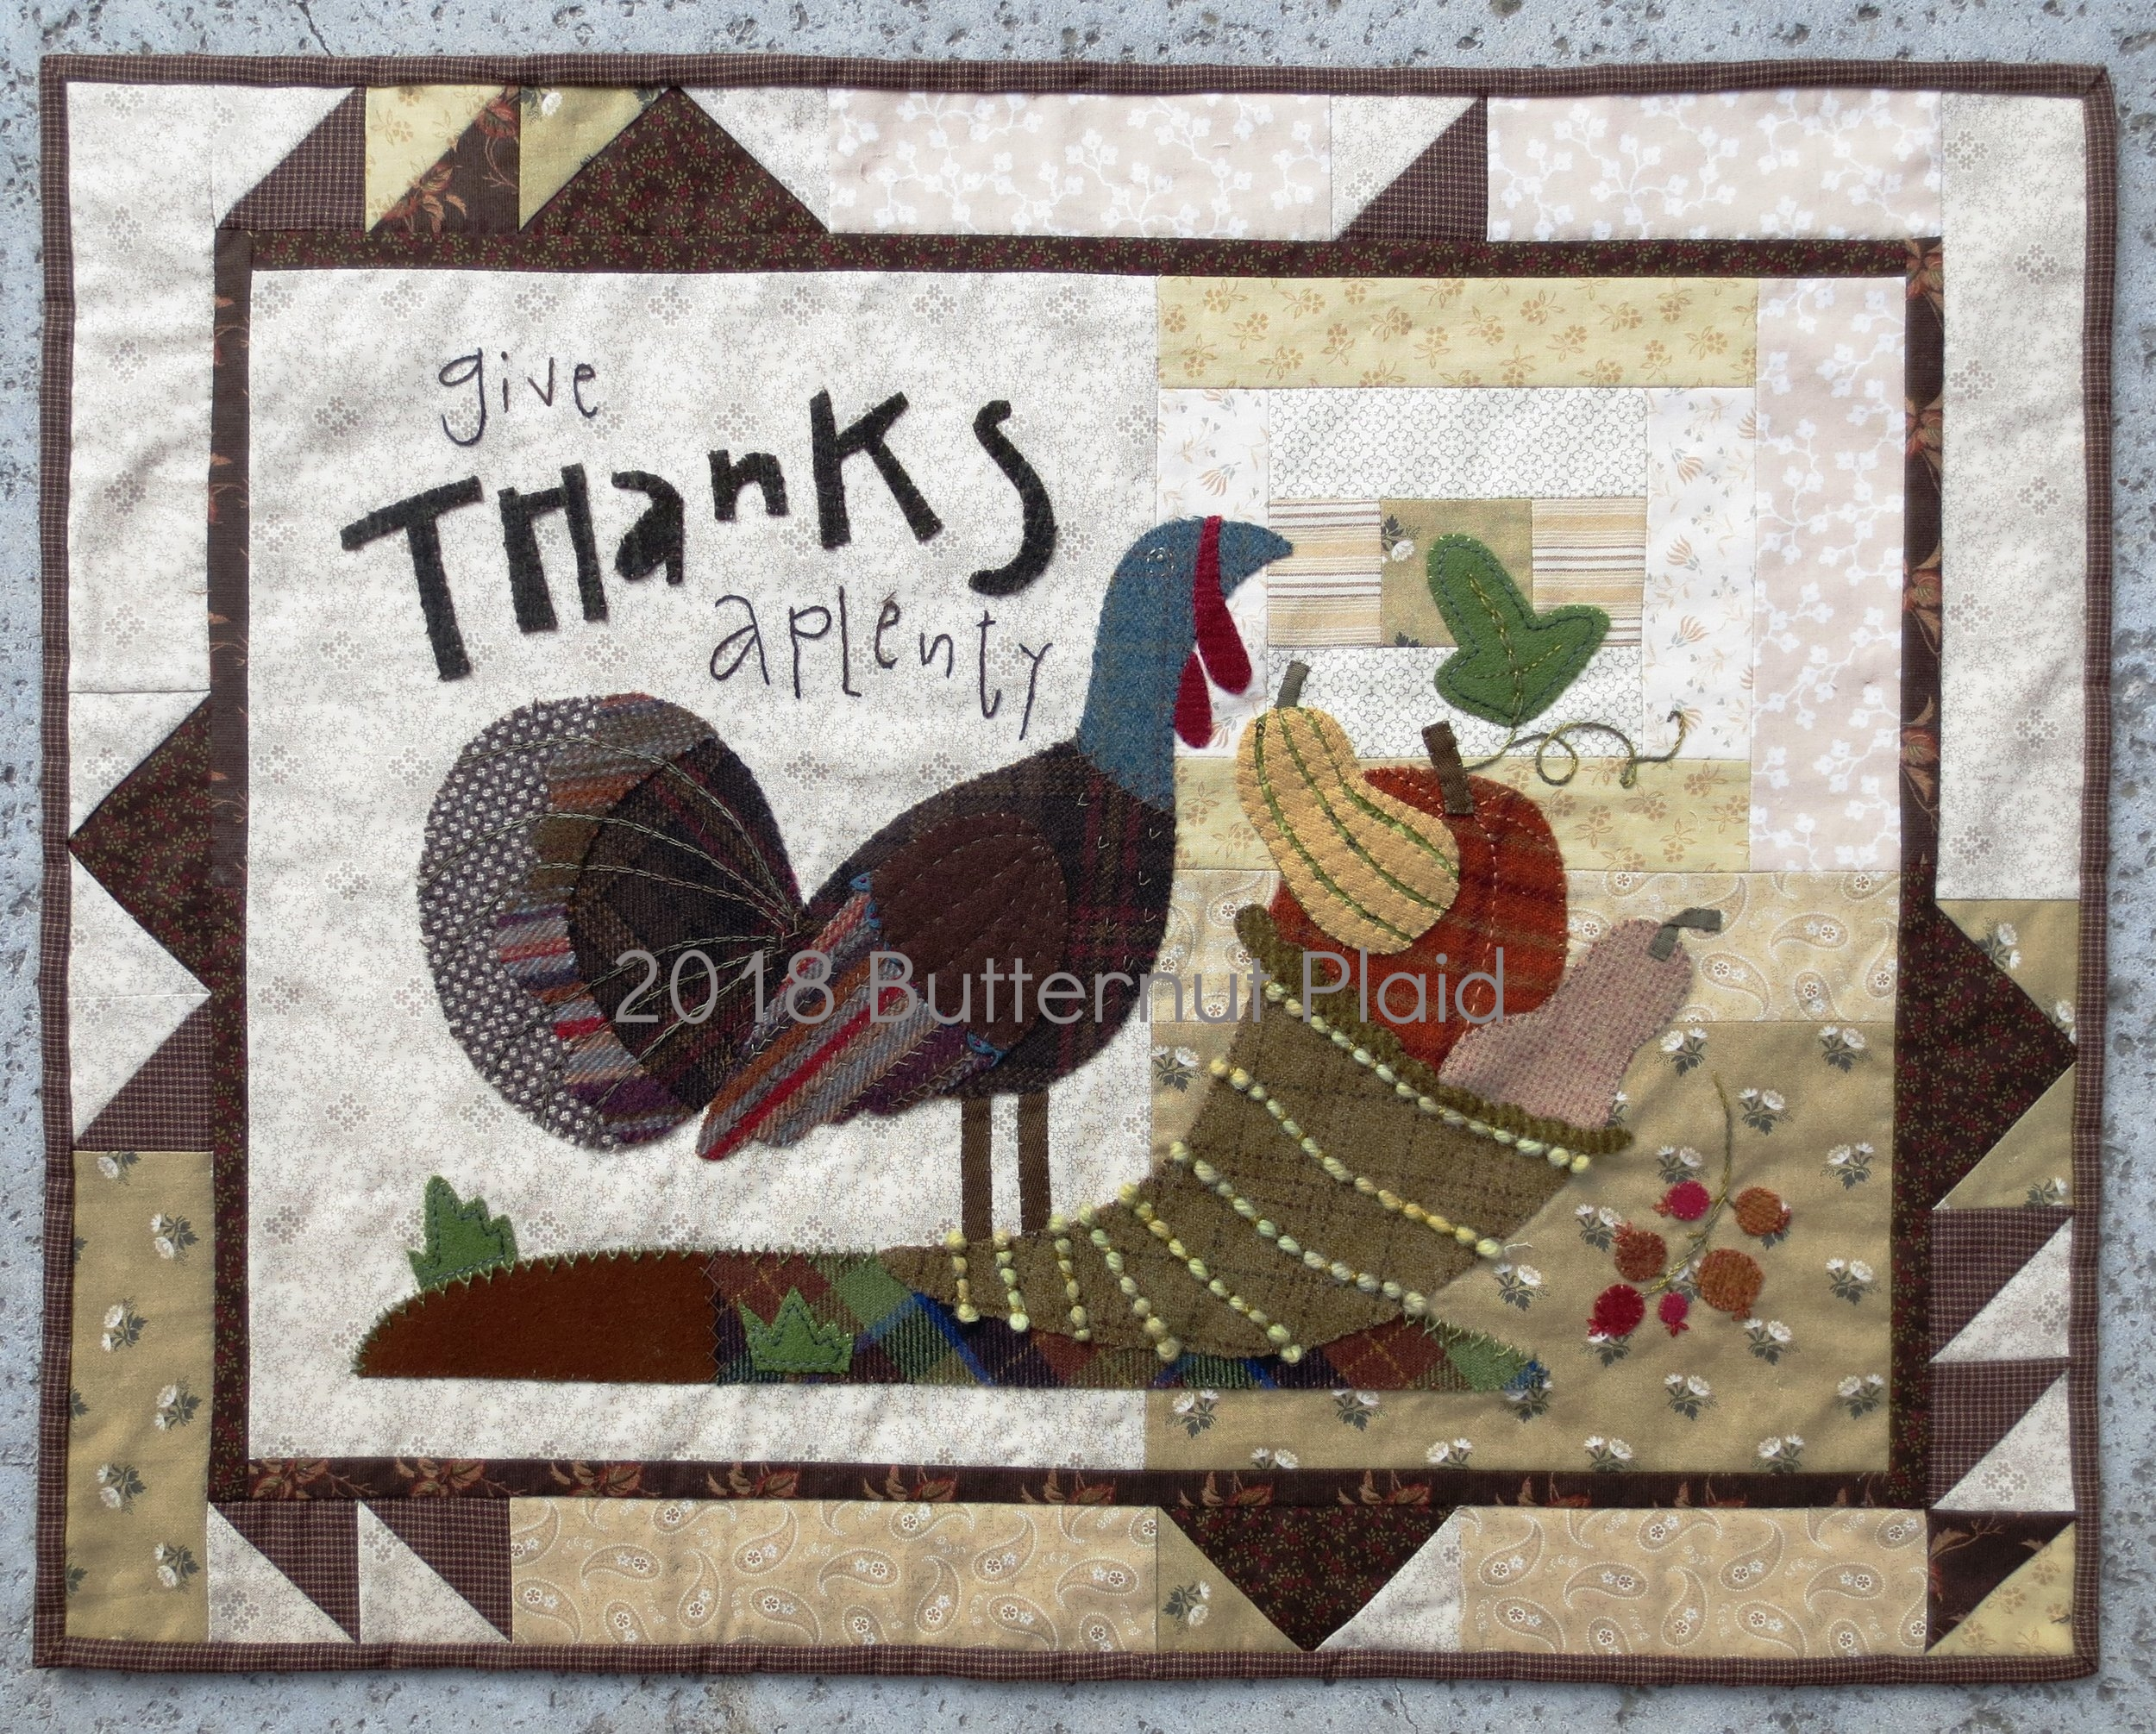 Give Thanks Aplenty wool applique fall table mat by Butternut Plaid